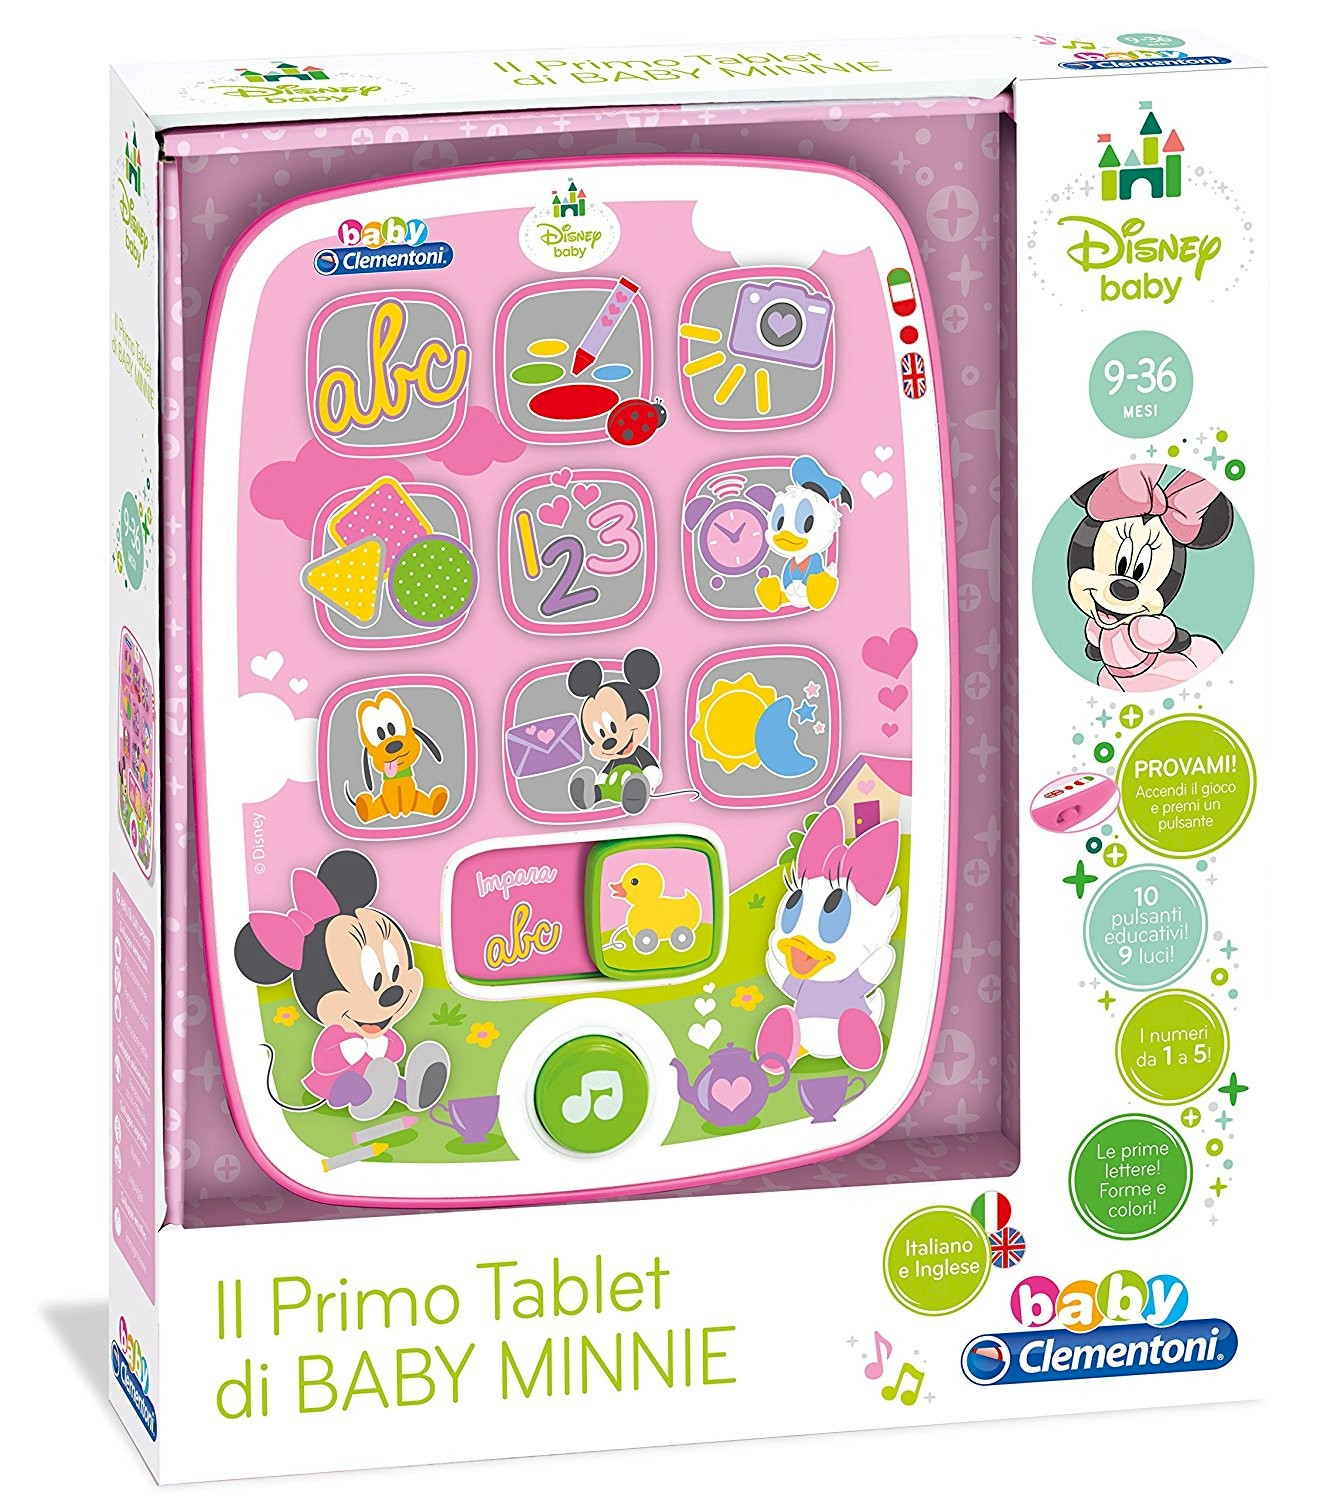 Il primo Tablet di Minnie